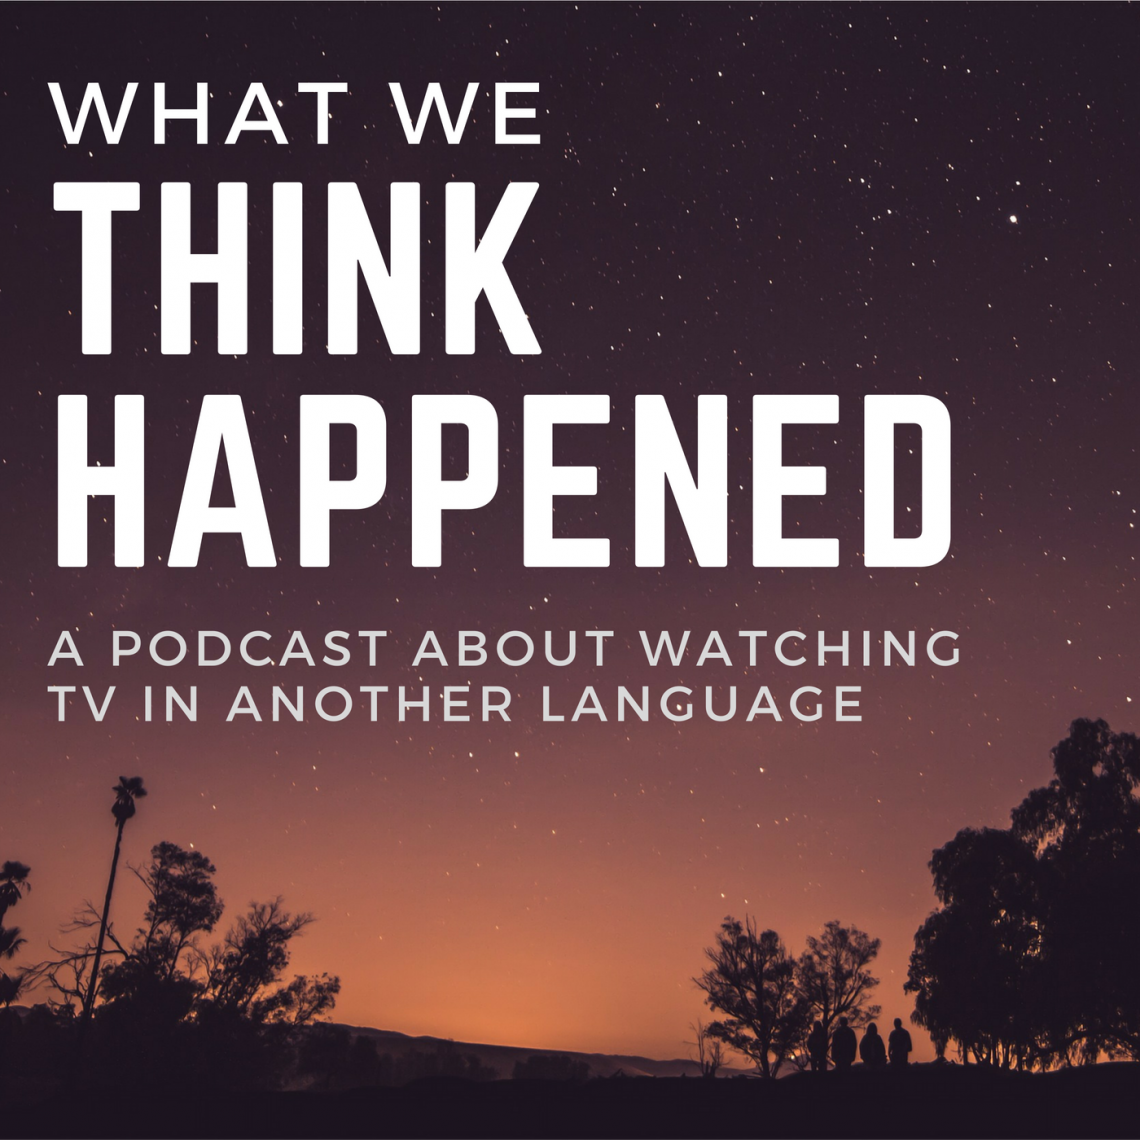 a podcast about watching tv in another language